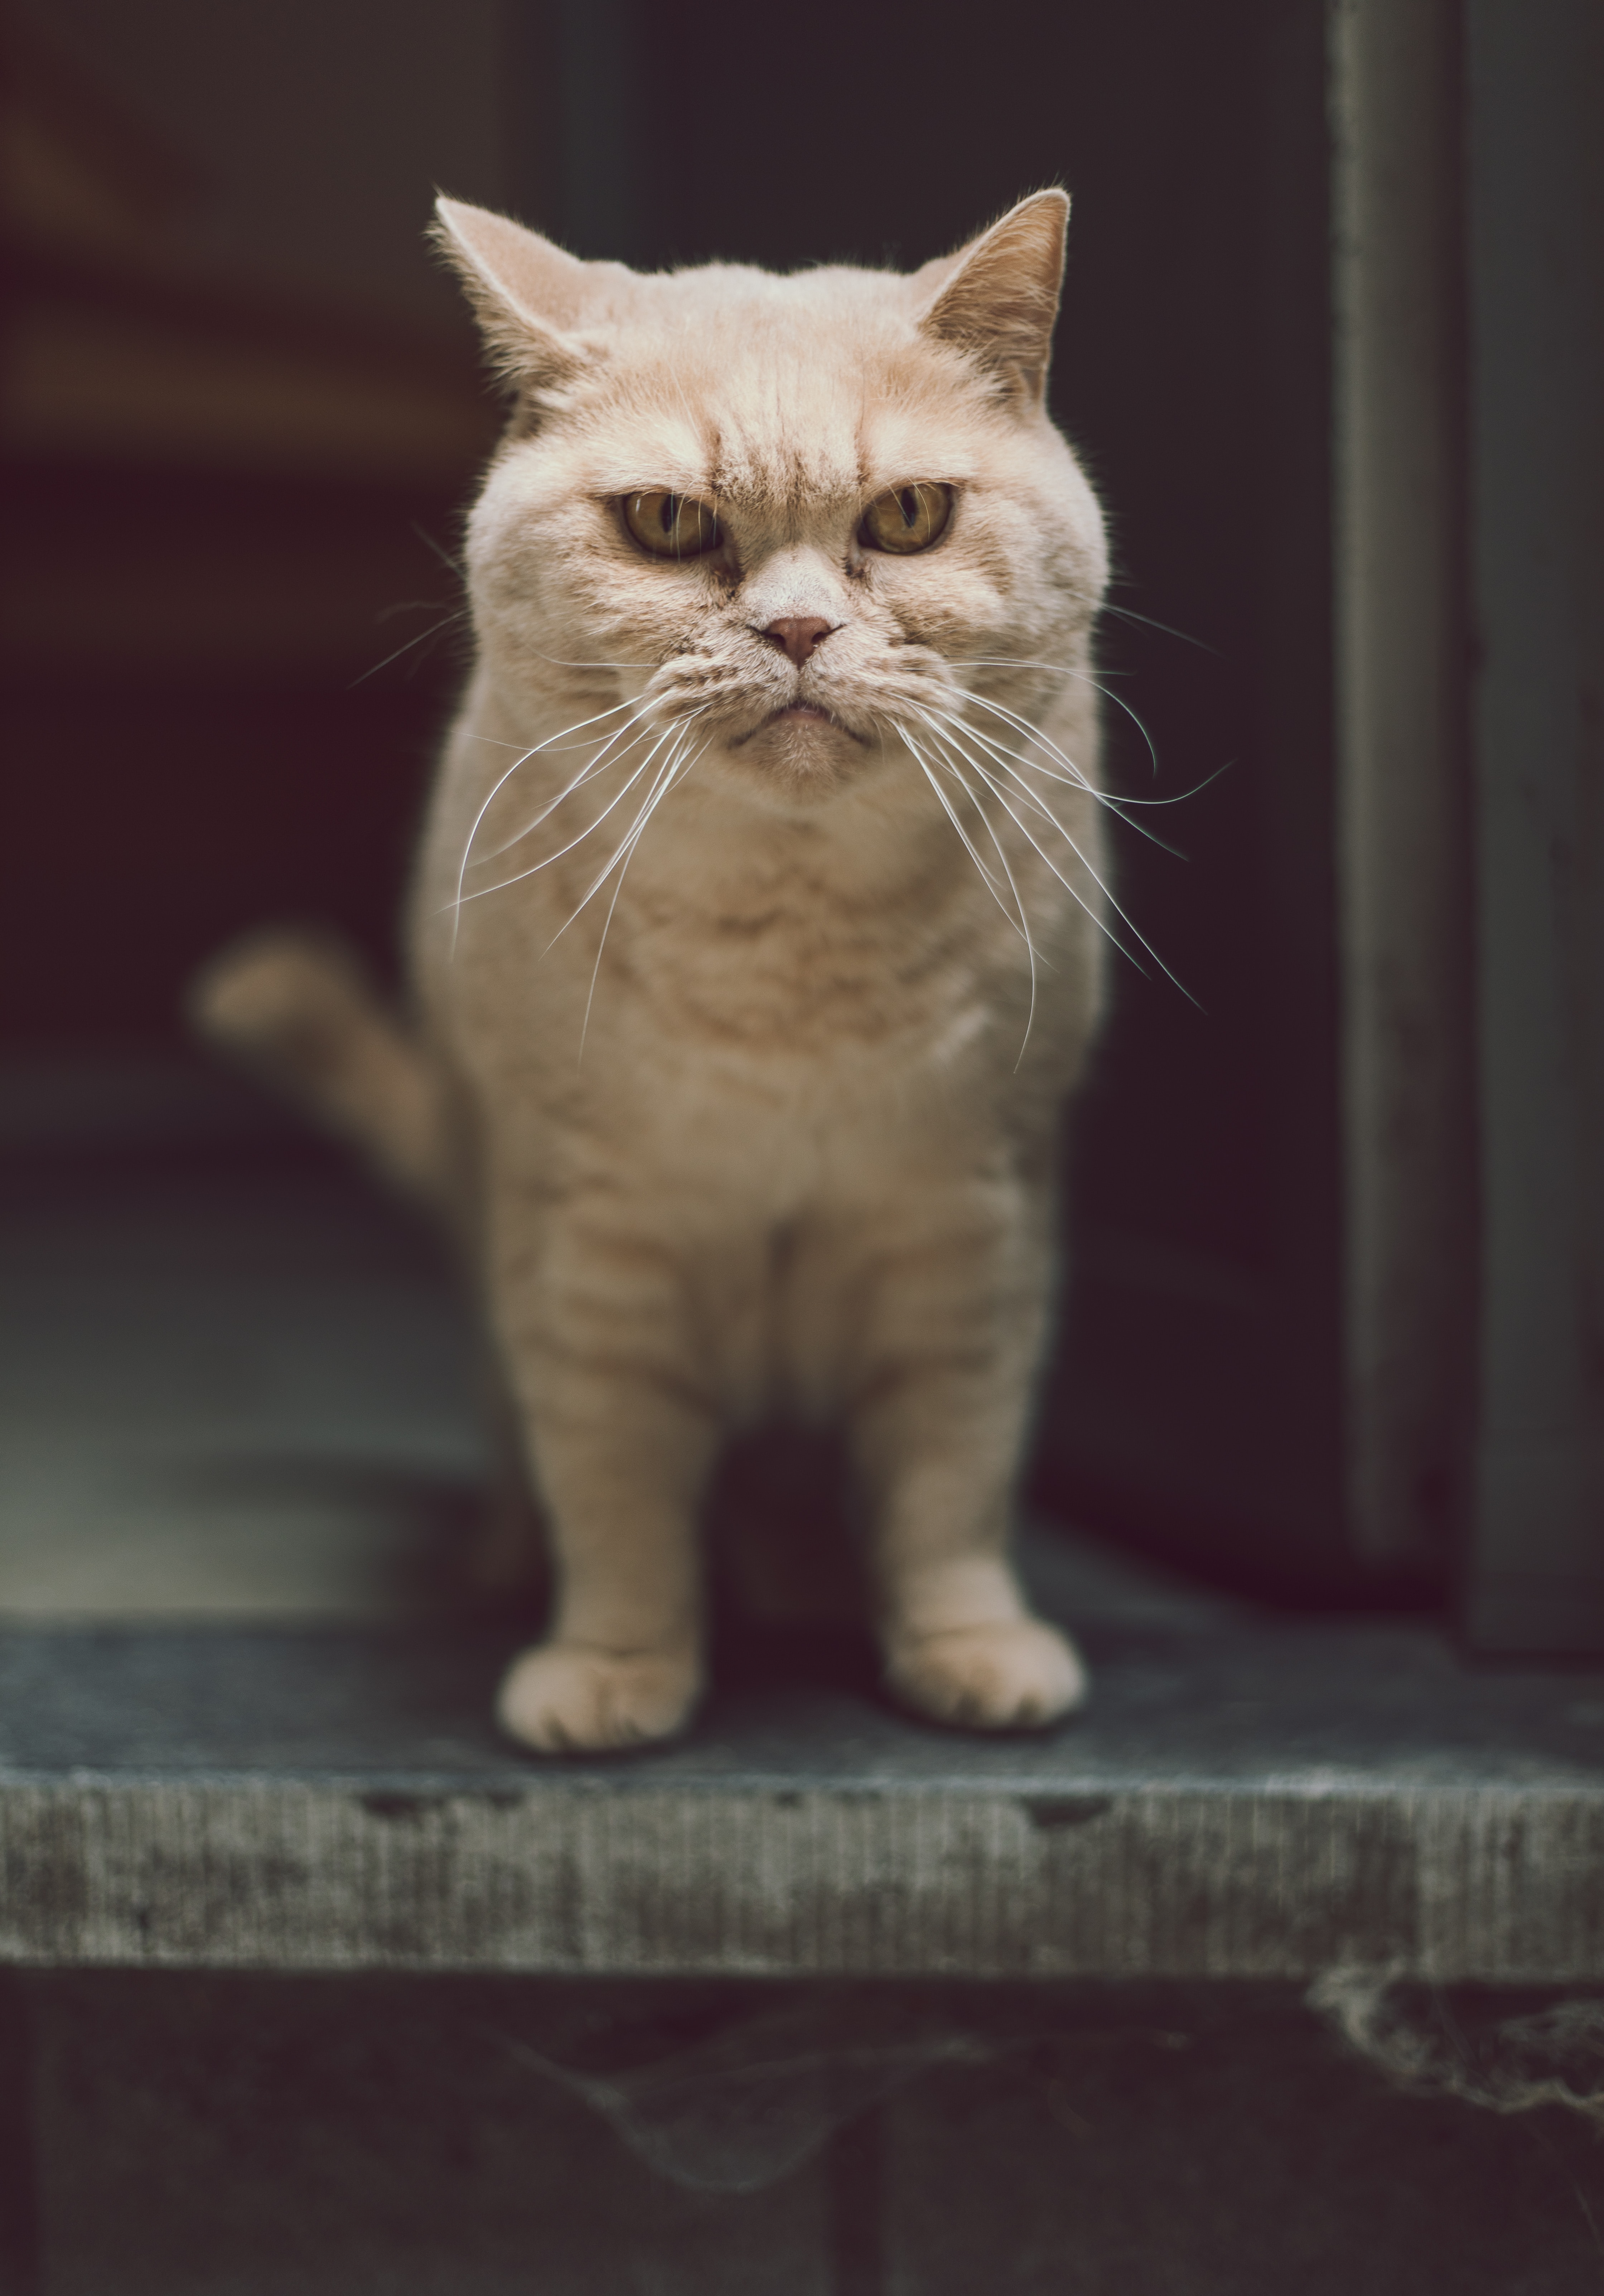 Download mobile wallpaper Serious, Cat, Animals, Opinion, Sight, Pet, Funny for free.